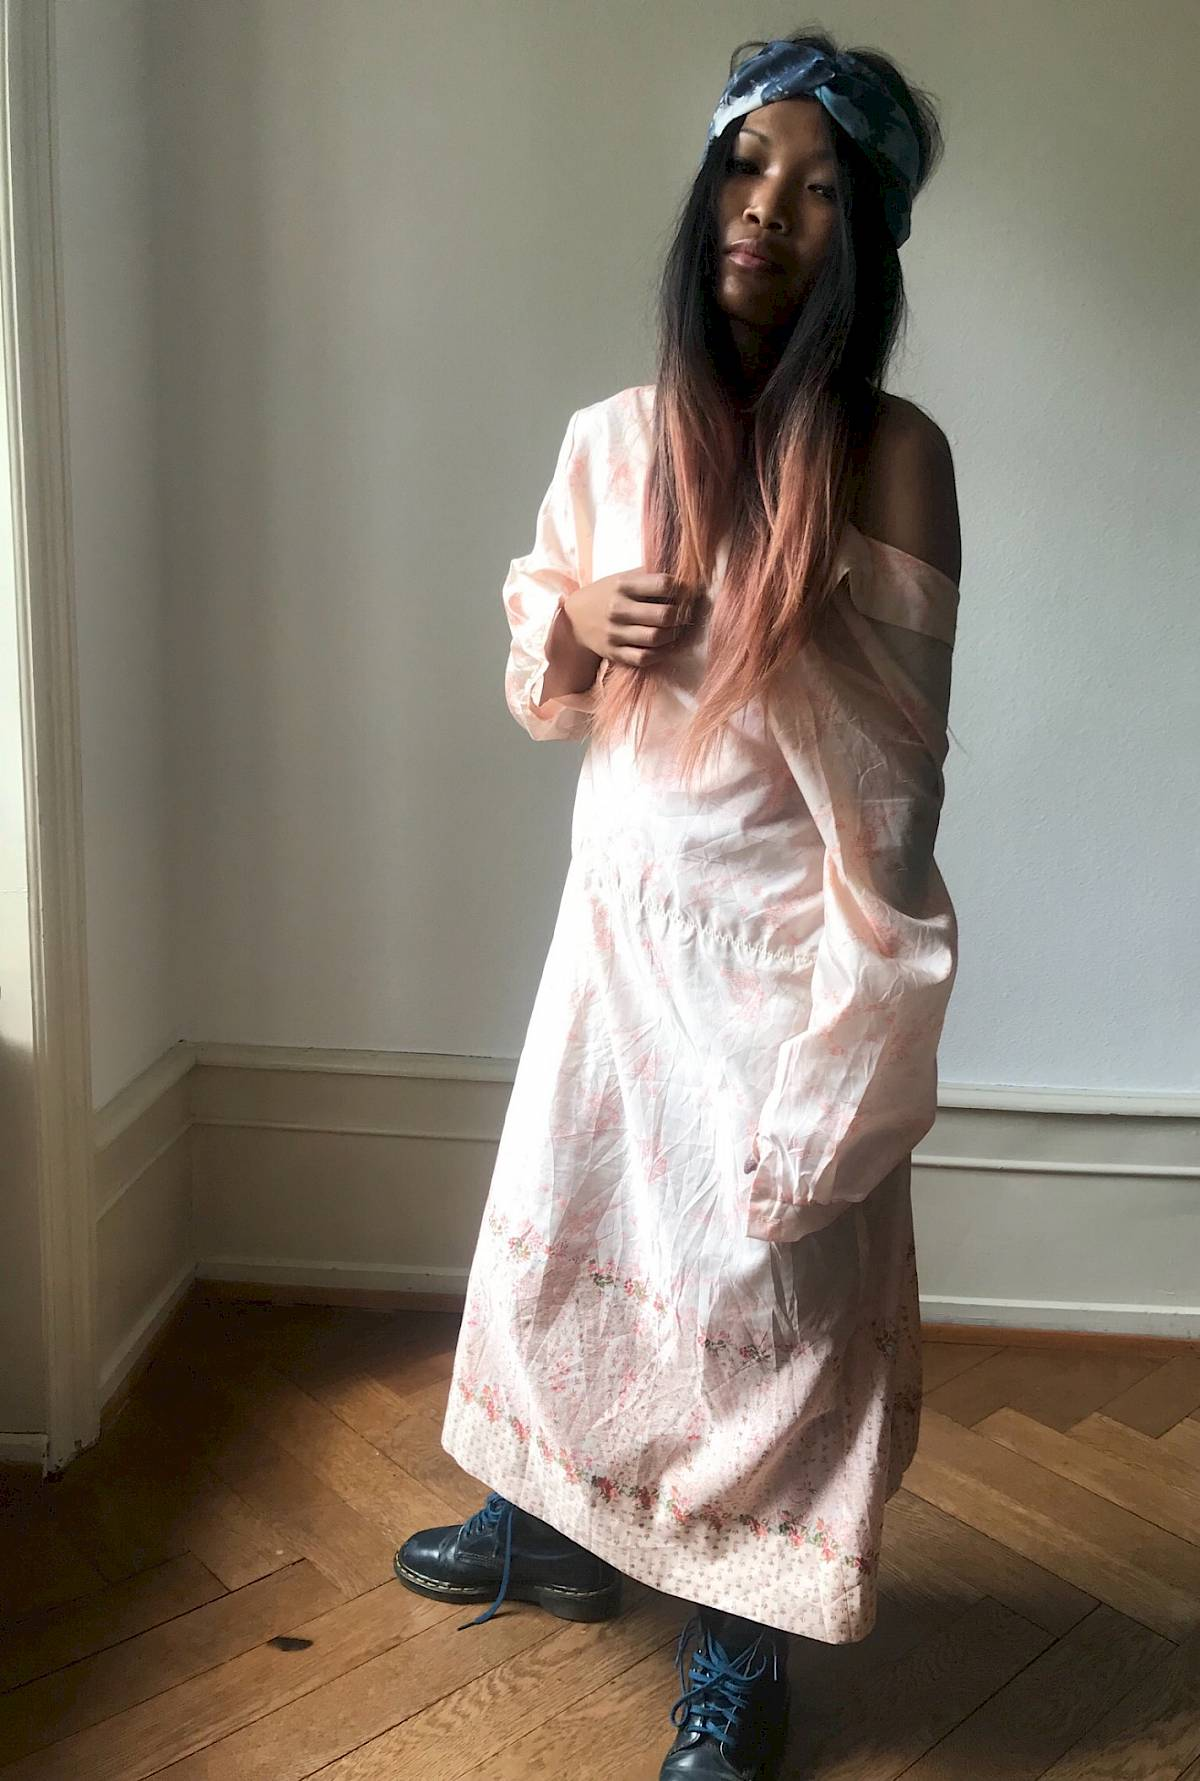 Miau Lanvin vintage night gown 70s 60s New York Saks Doc Martens Boho bohemian silk satin retro